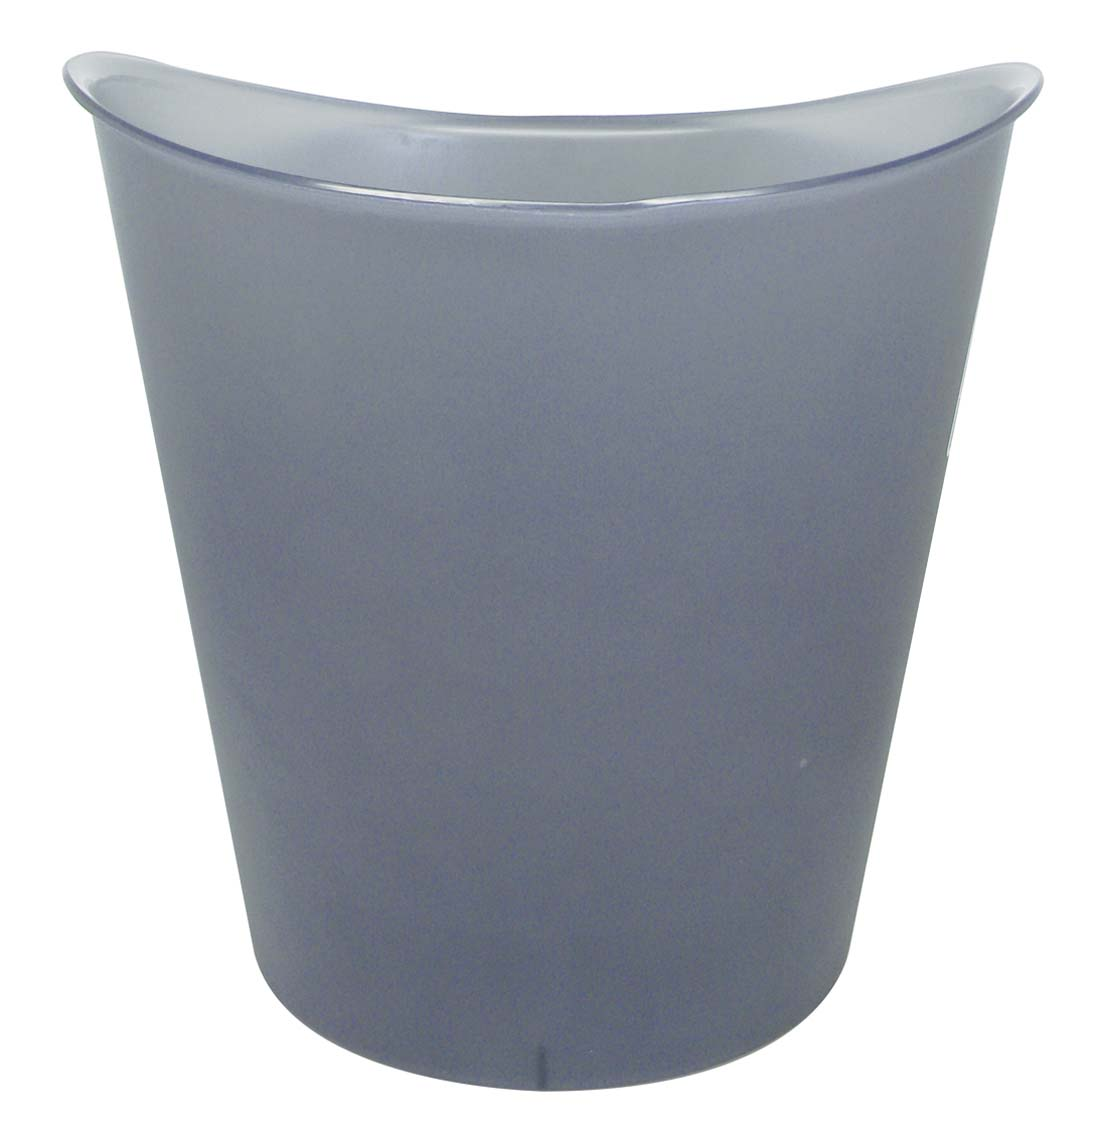 View STERILITE WASTBASKET 3 GALLON OVAL GREY ** MADE IN USA **